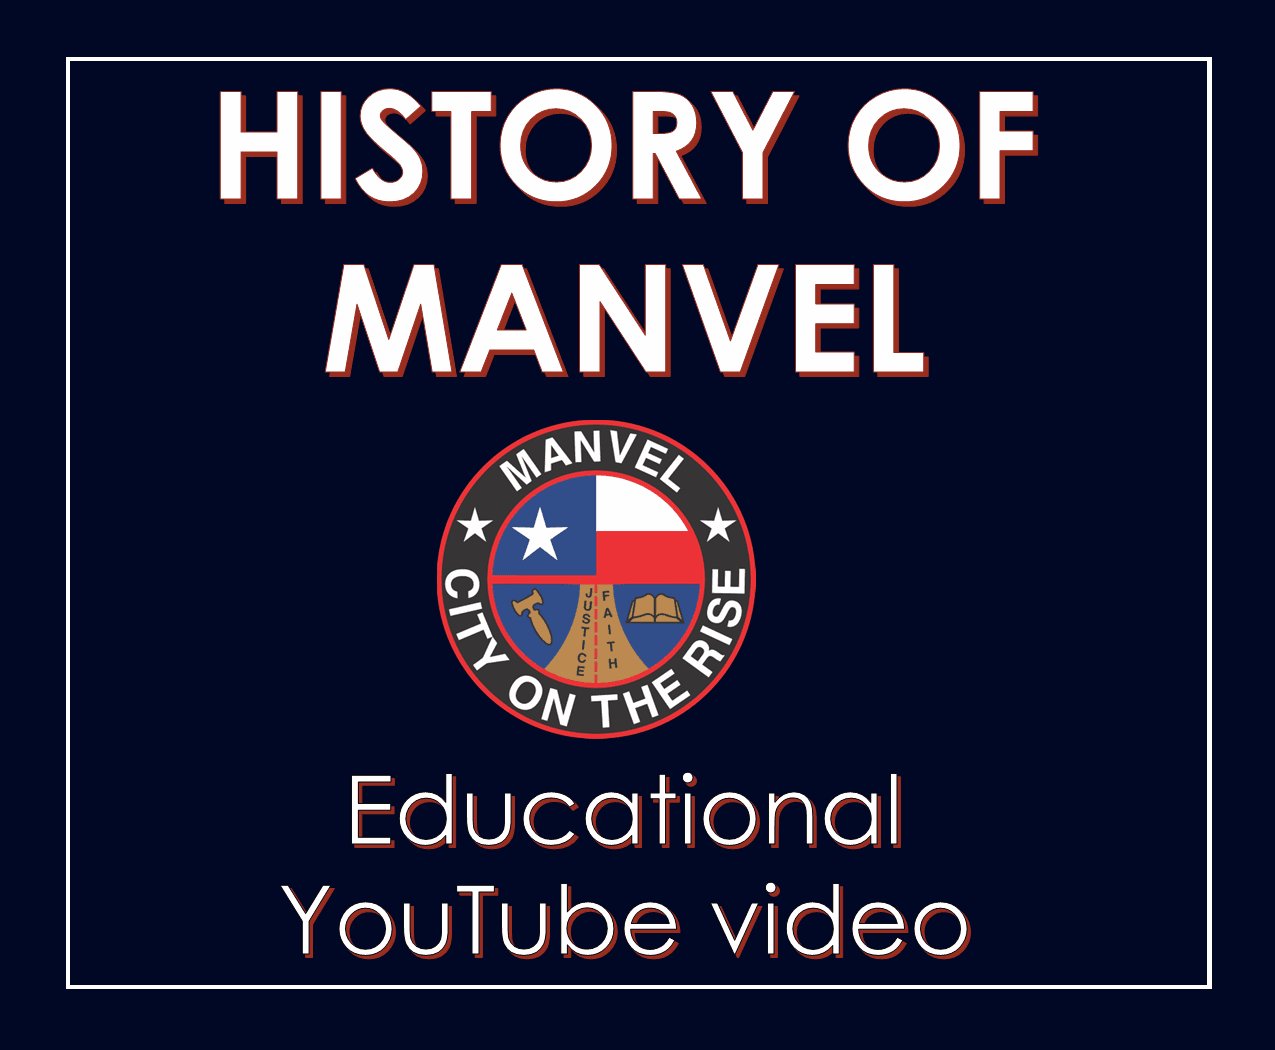 history of manvel